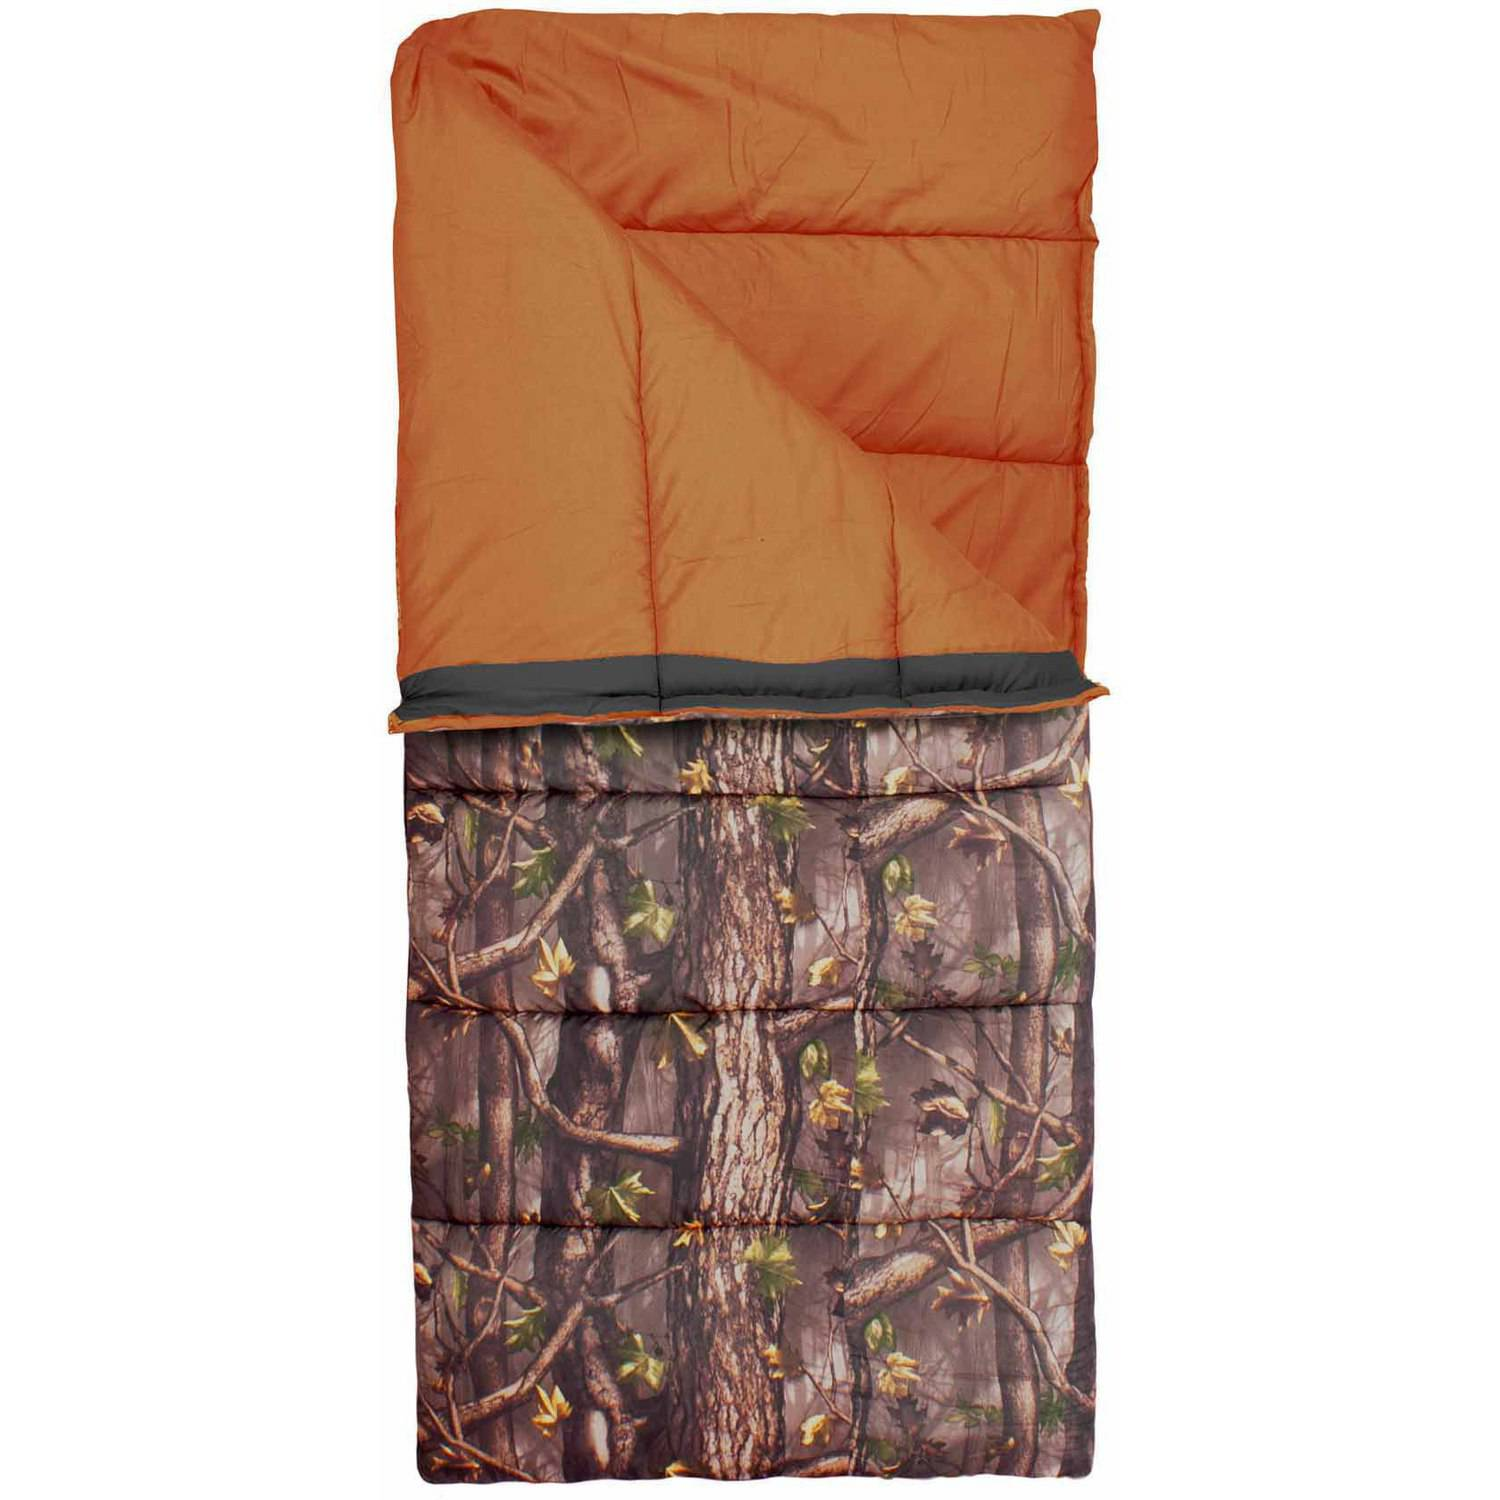 Exxel Outdoors Youth Outdoorsman 25-35 Degrees Sleeping Bag, Camo by